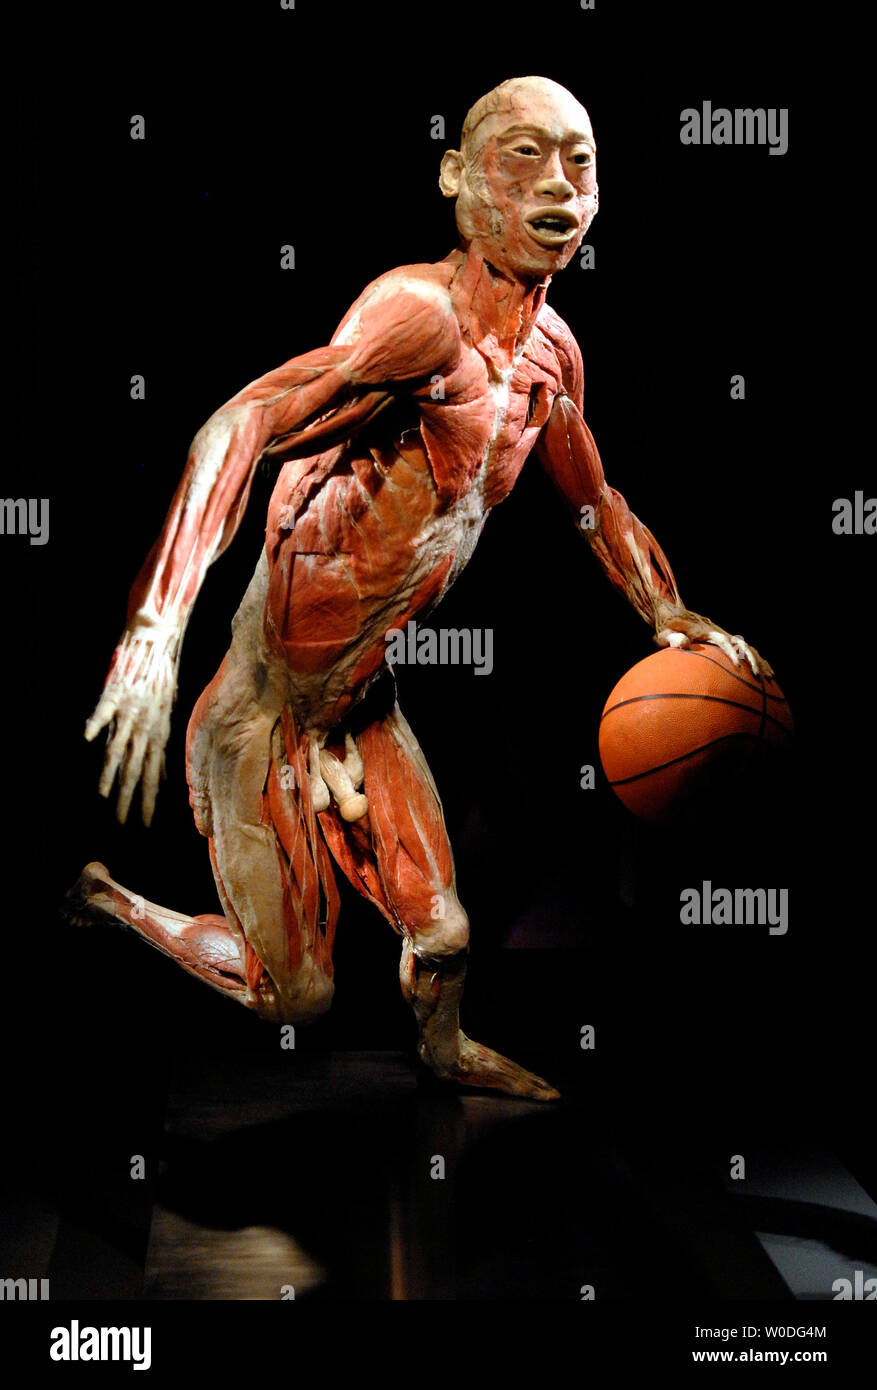 A specimen is seen with a basketball in an action pose in